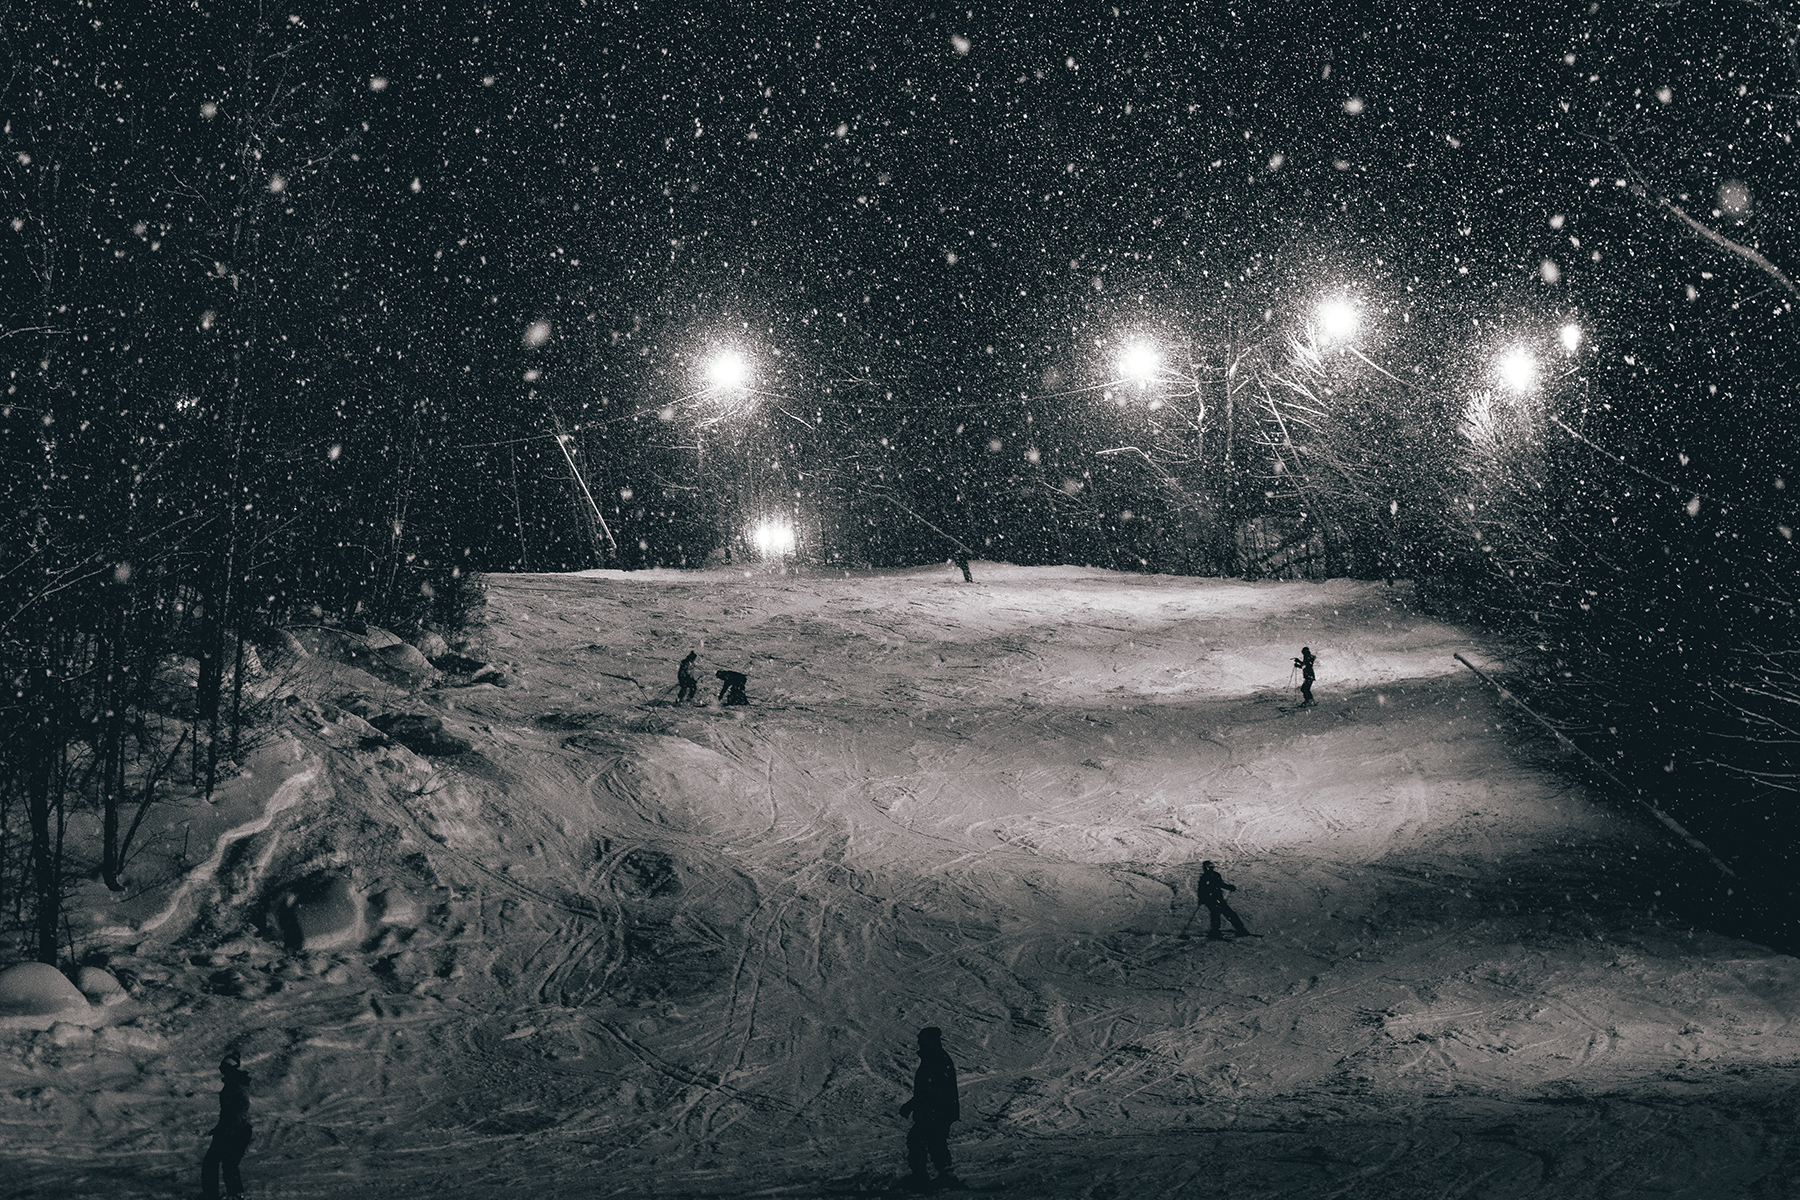 Night Skiing with fresh snow